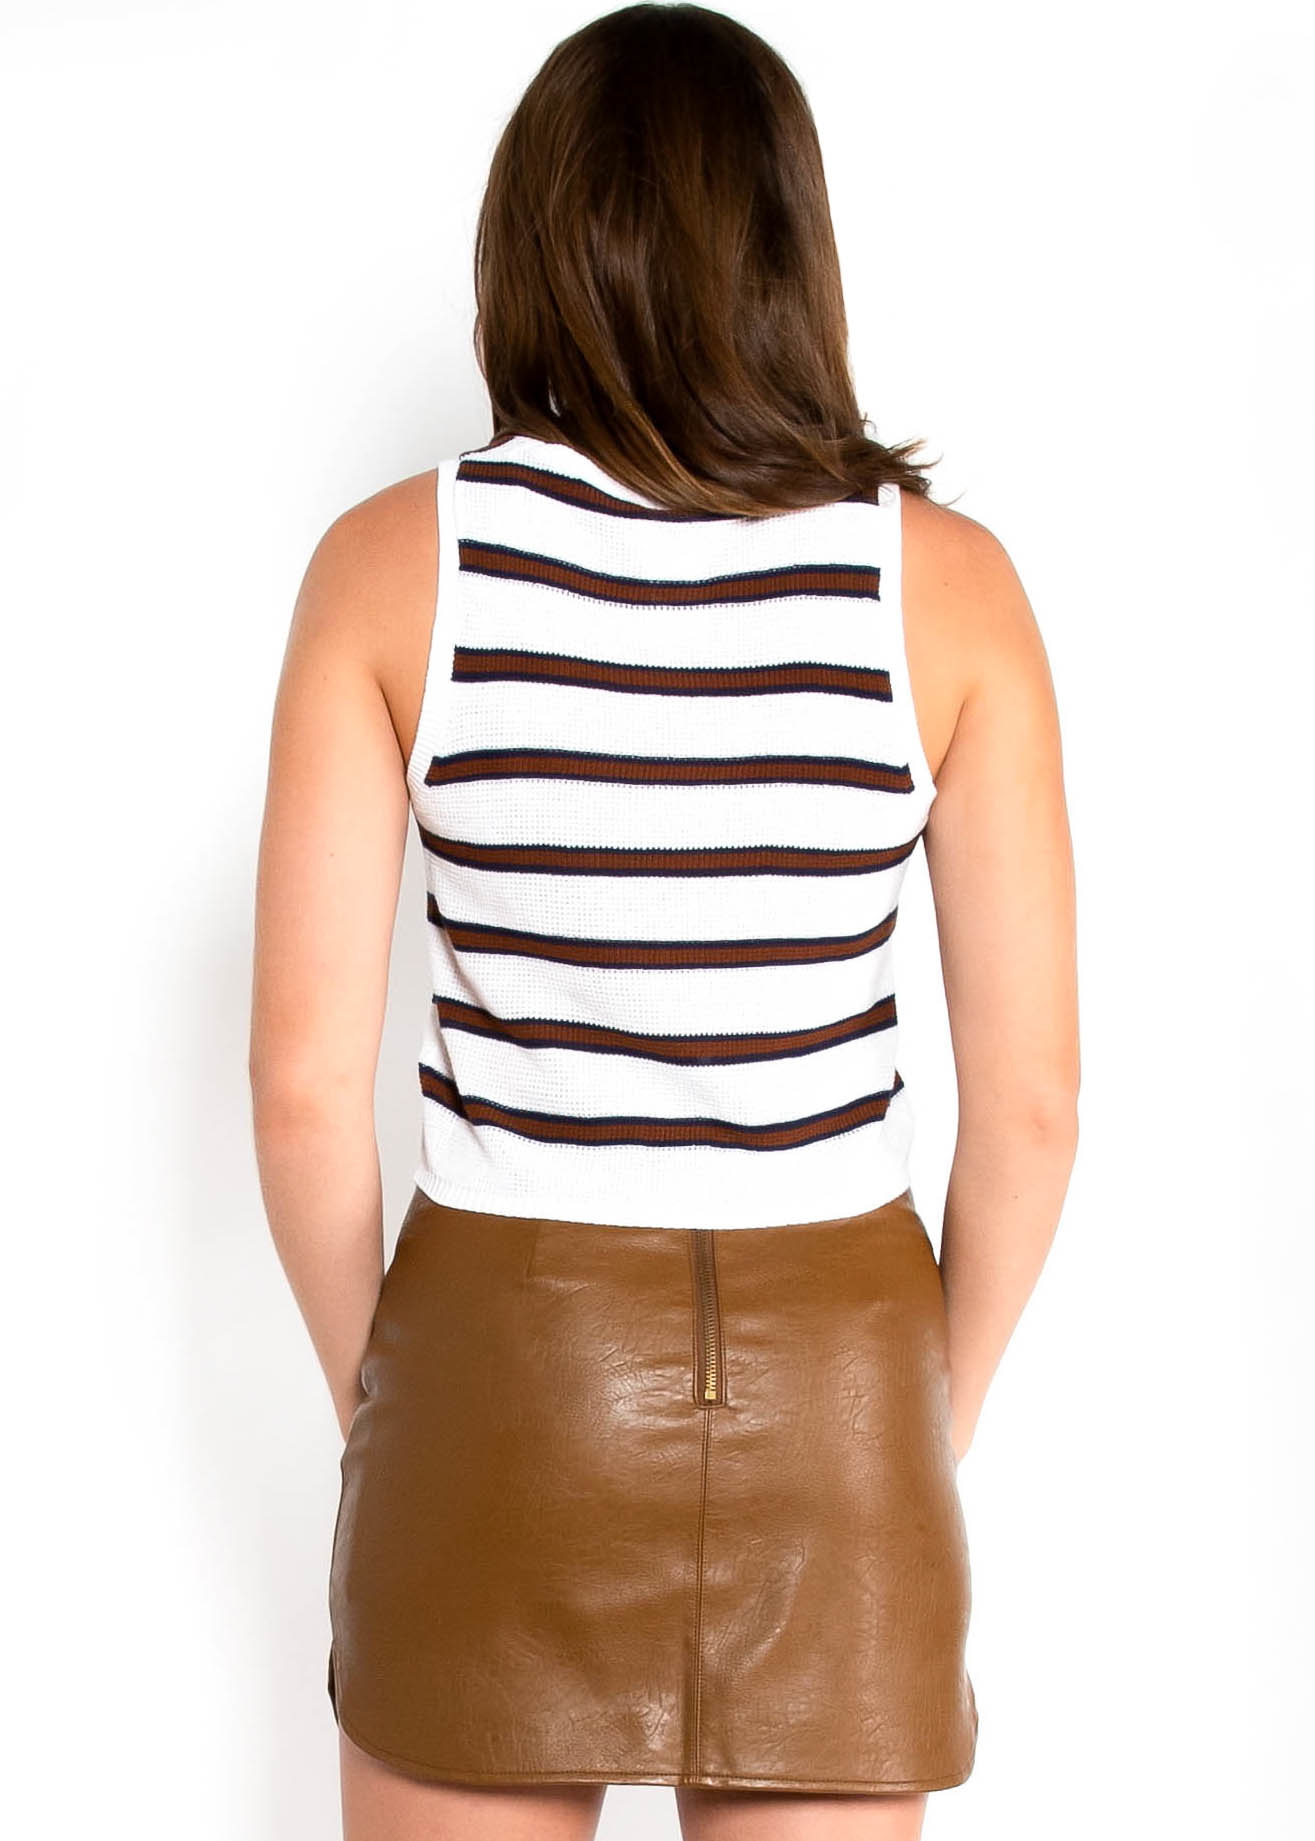 SIMPLE LIFE STRIPED KNIT TANK TOP